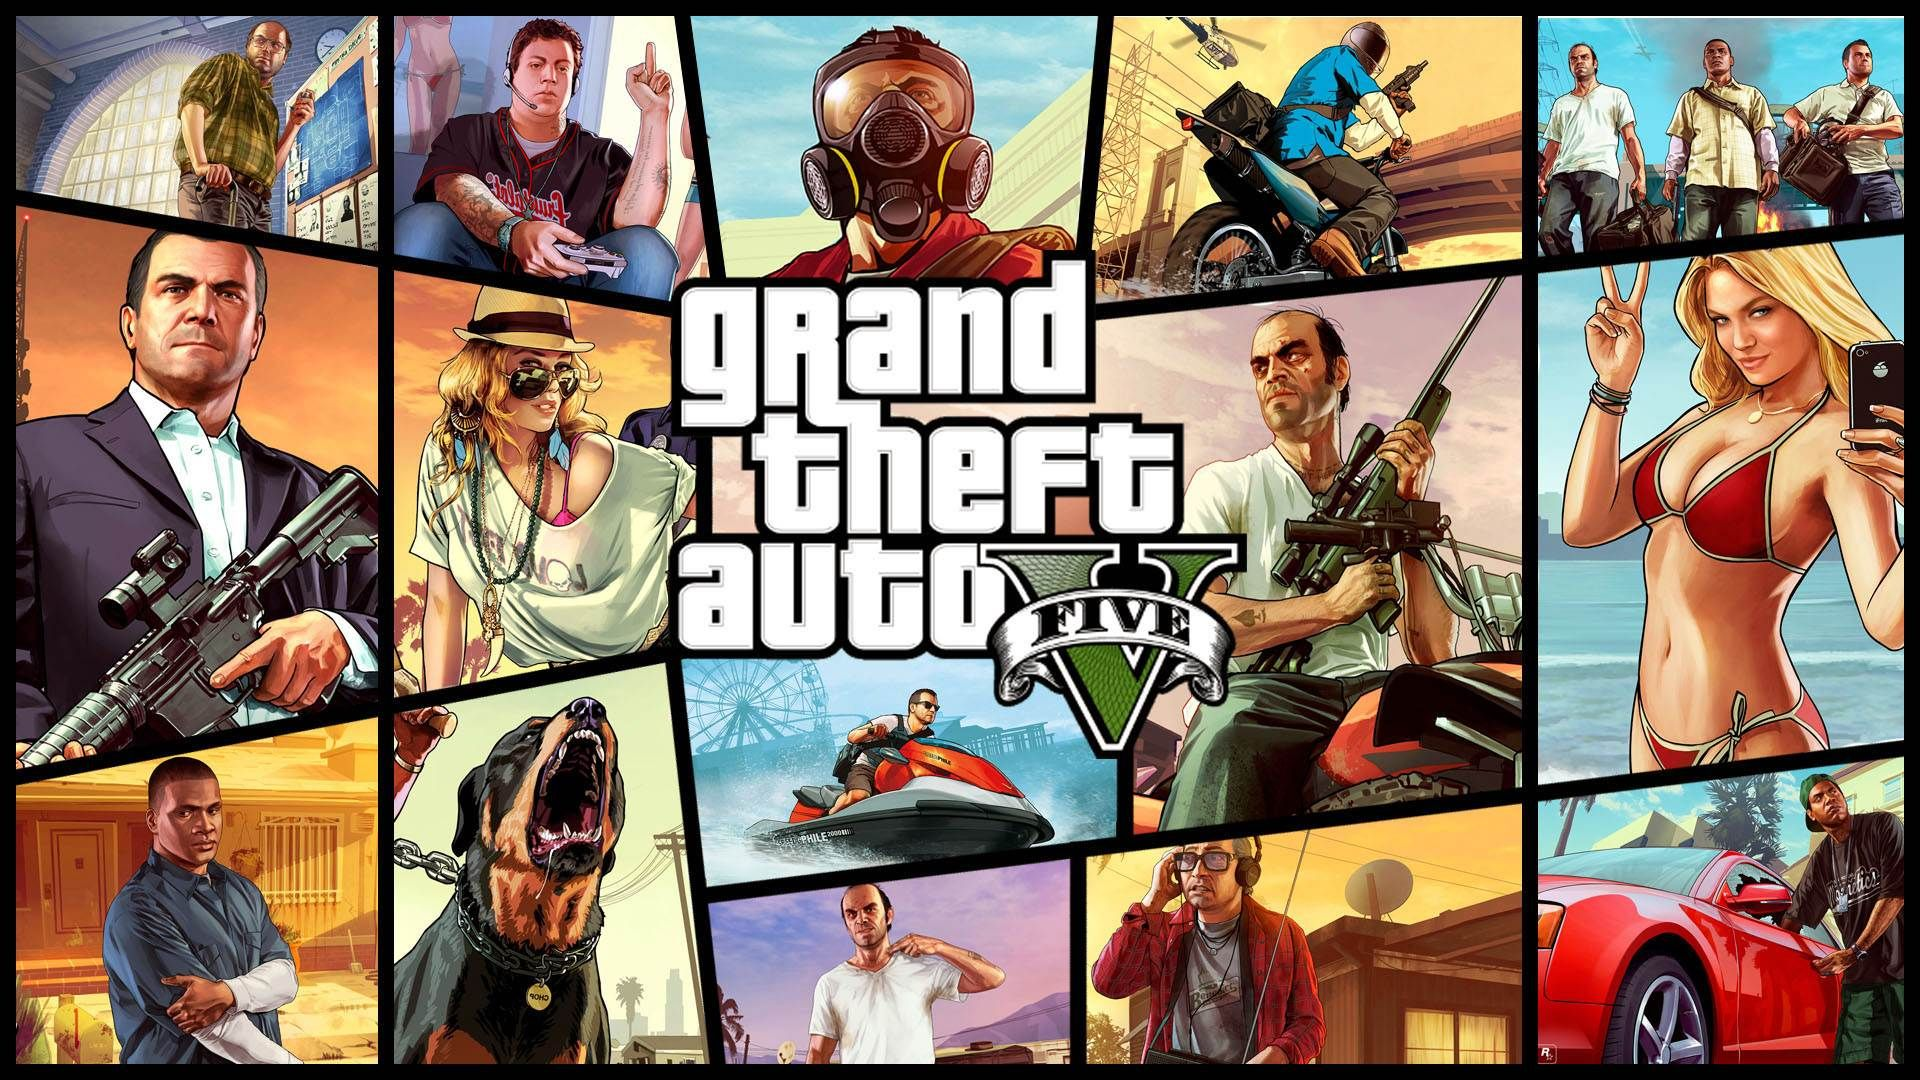 Collection Of Gta V Wallpaper On Hdwallpapers 1920 1080 Gta V